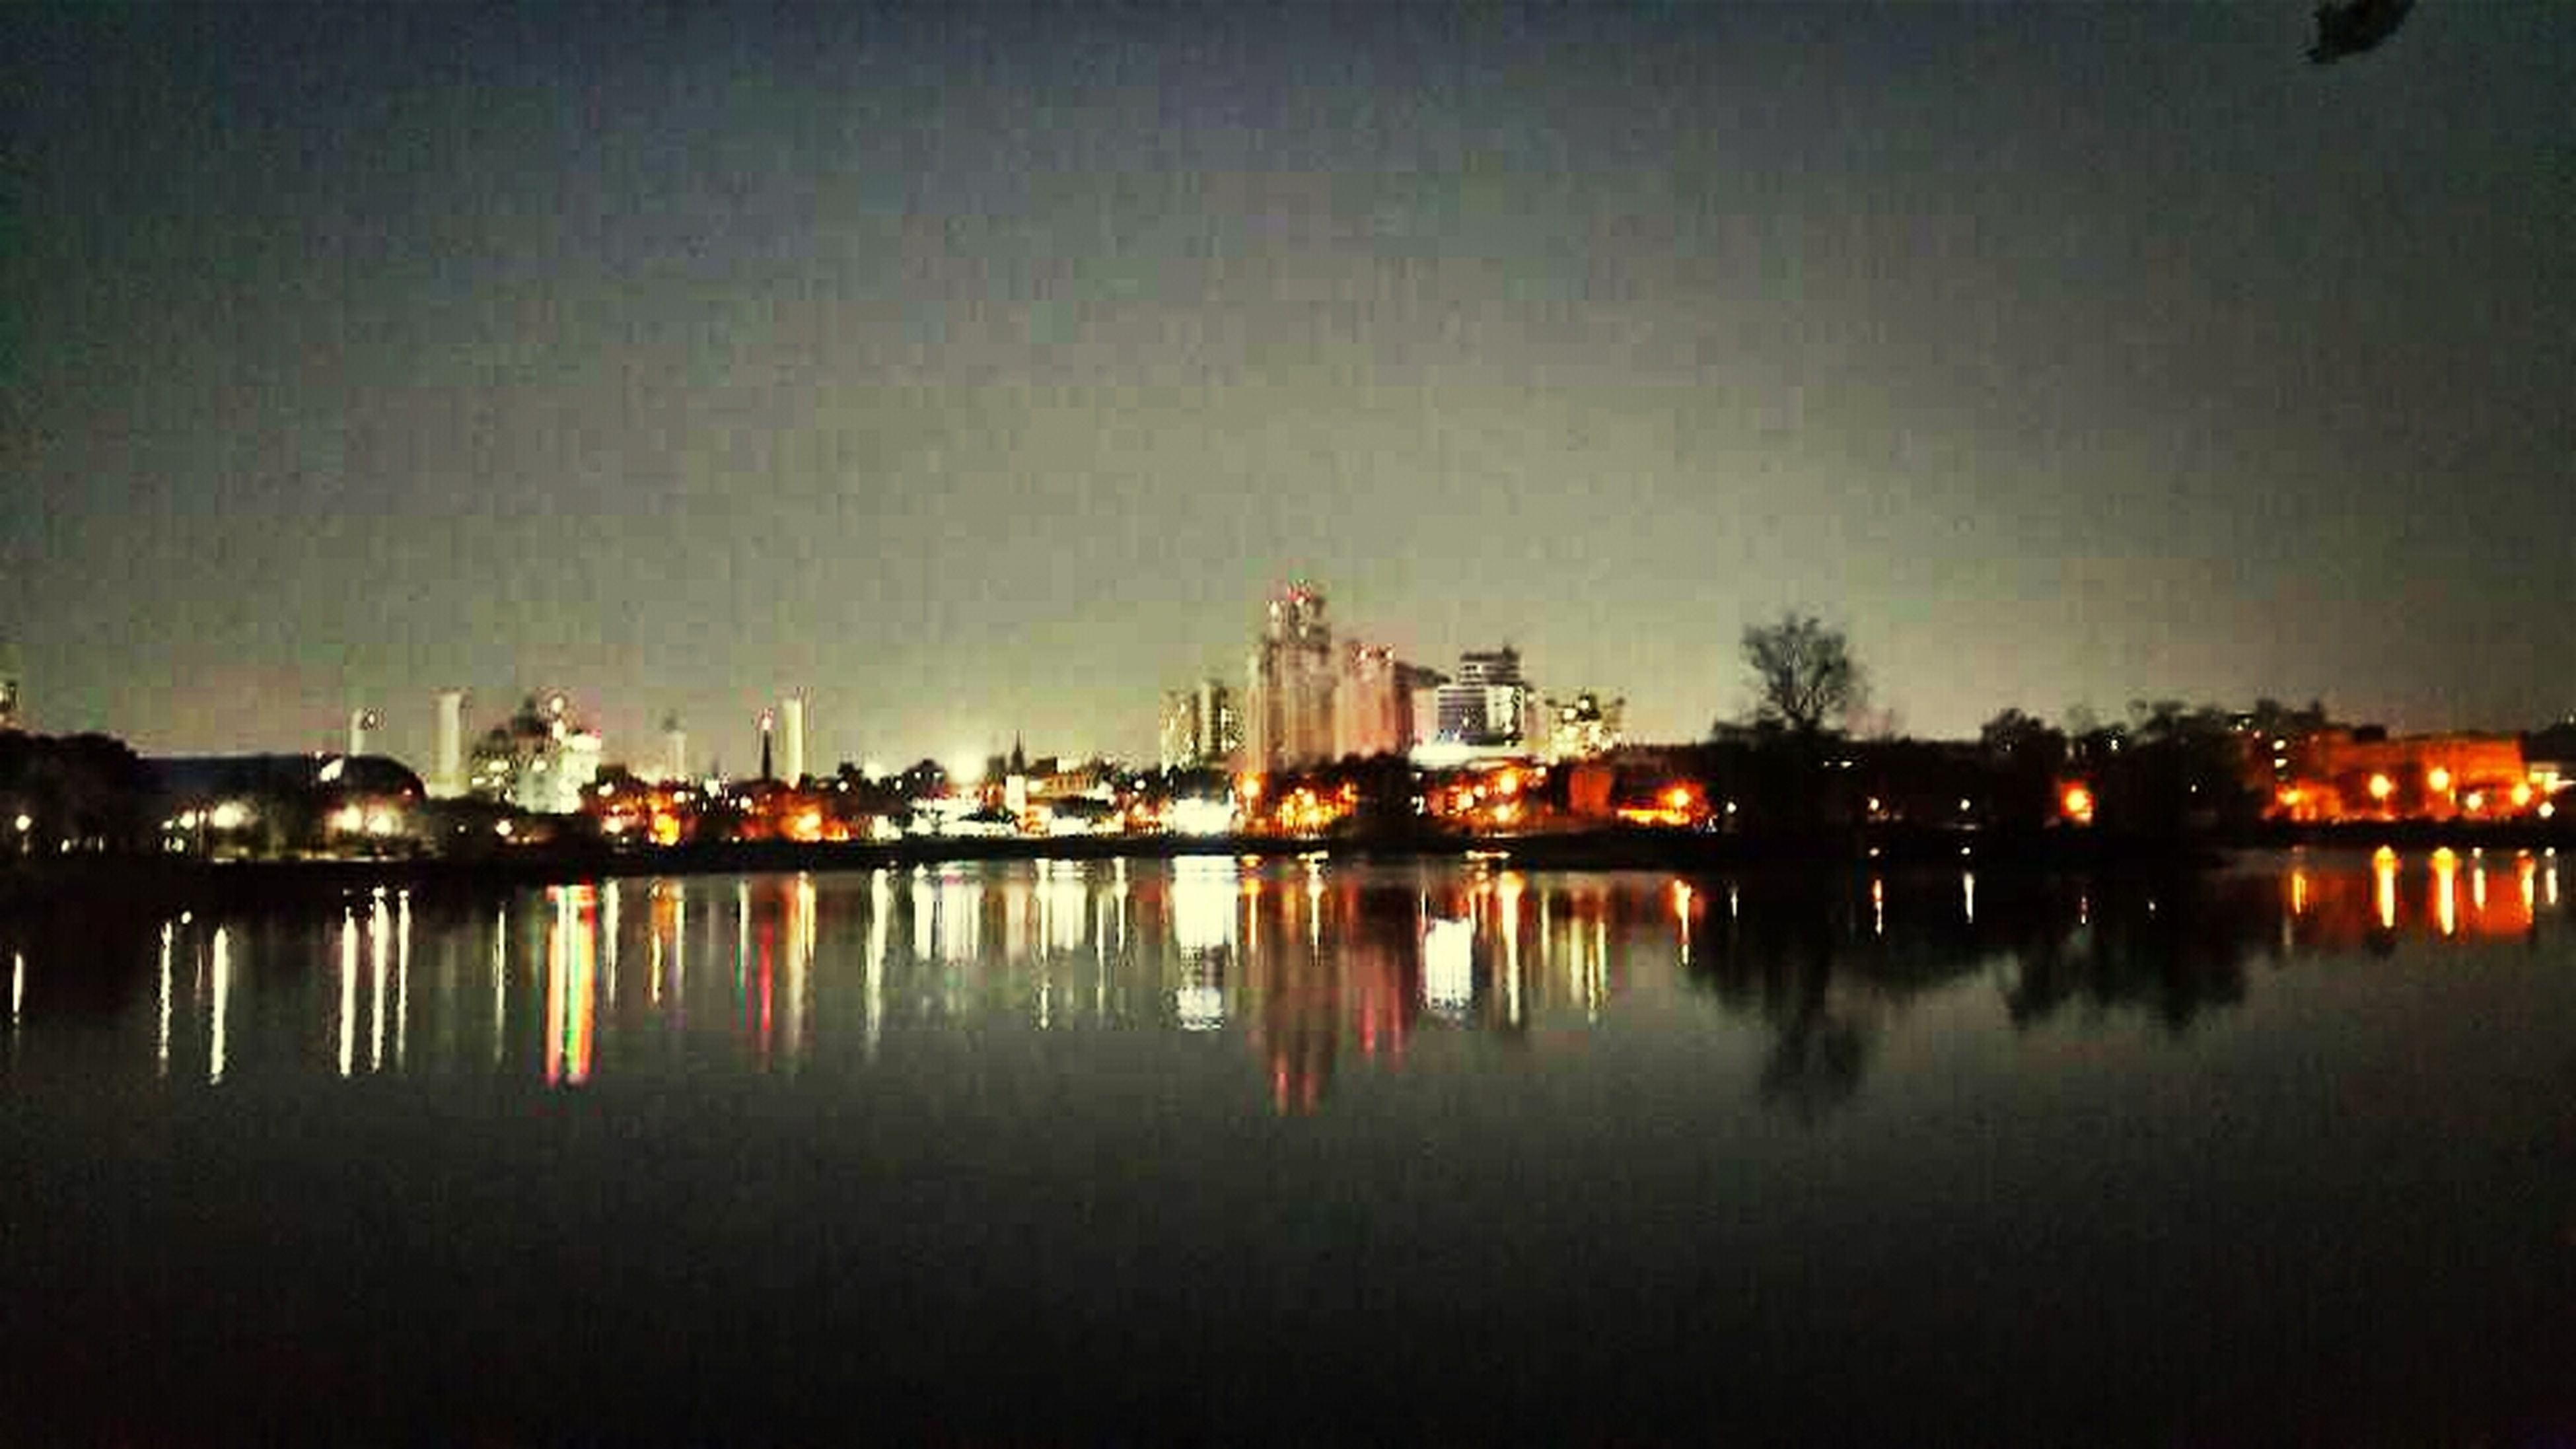 architecture, building exterior, built structure, water, illuminated, waterfront, reflection, night, clear sky, copy space, city, river, sky, dusk, lake, outdoors, no people, building, cityscape, residential structure